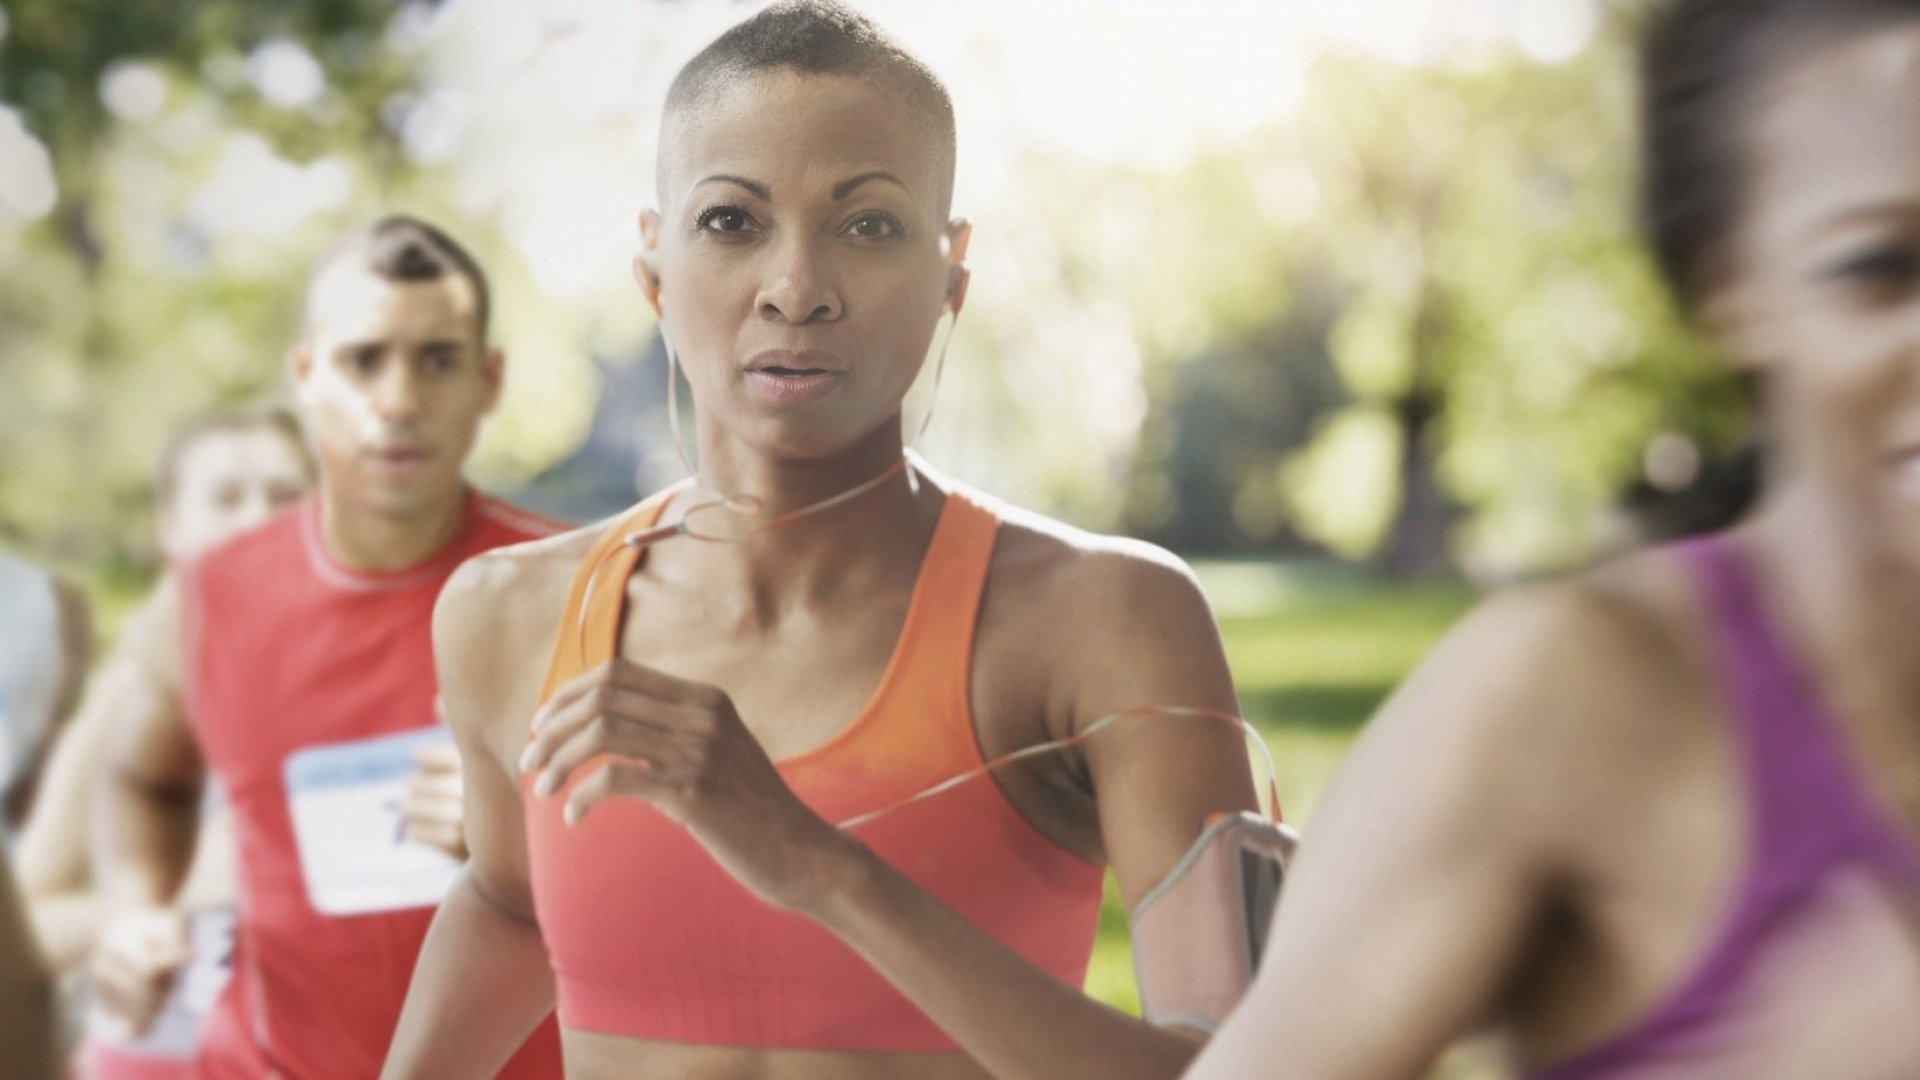 3 Ways You Can Apply The Martyrdom Effect to Powerfully Improve Your Exercise -- and Results